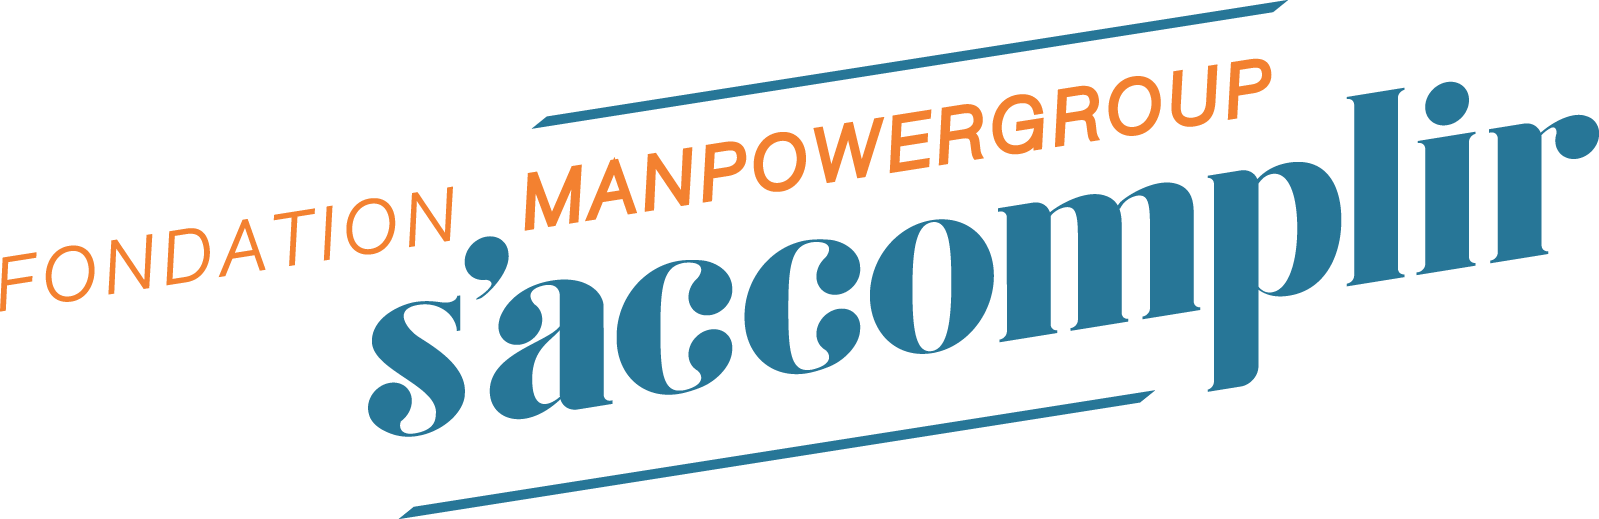 Fondation ManpowerGroup S'accomplir